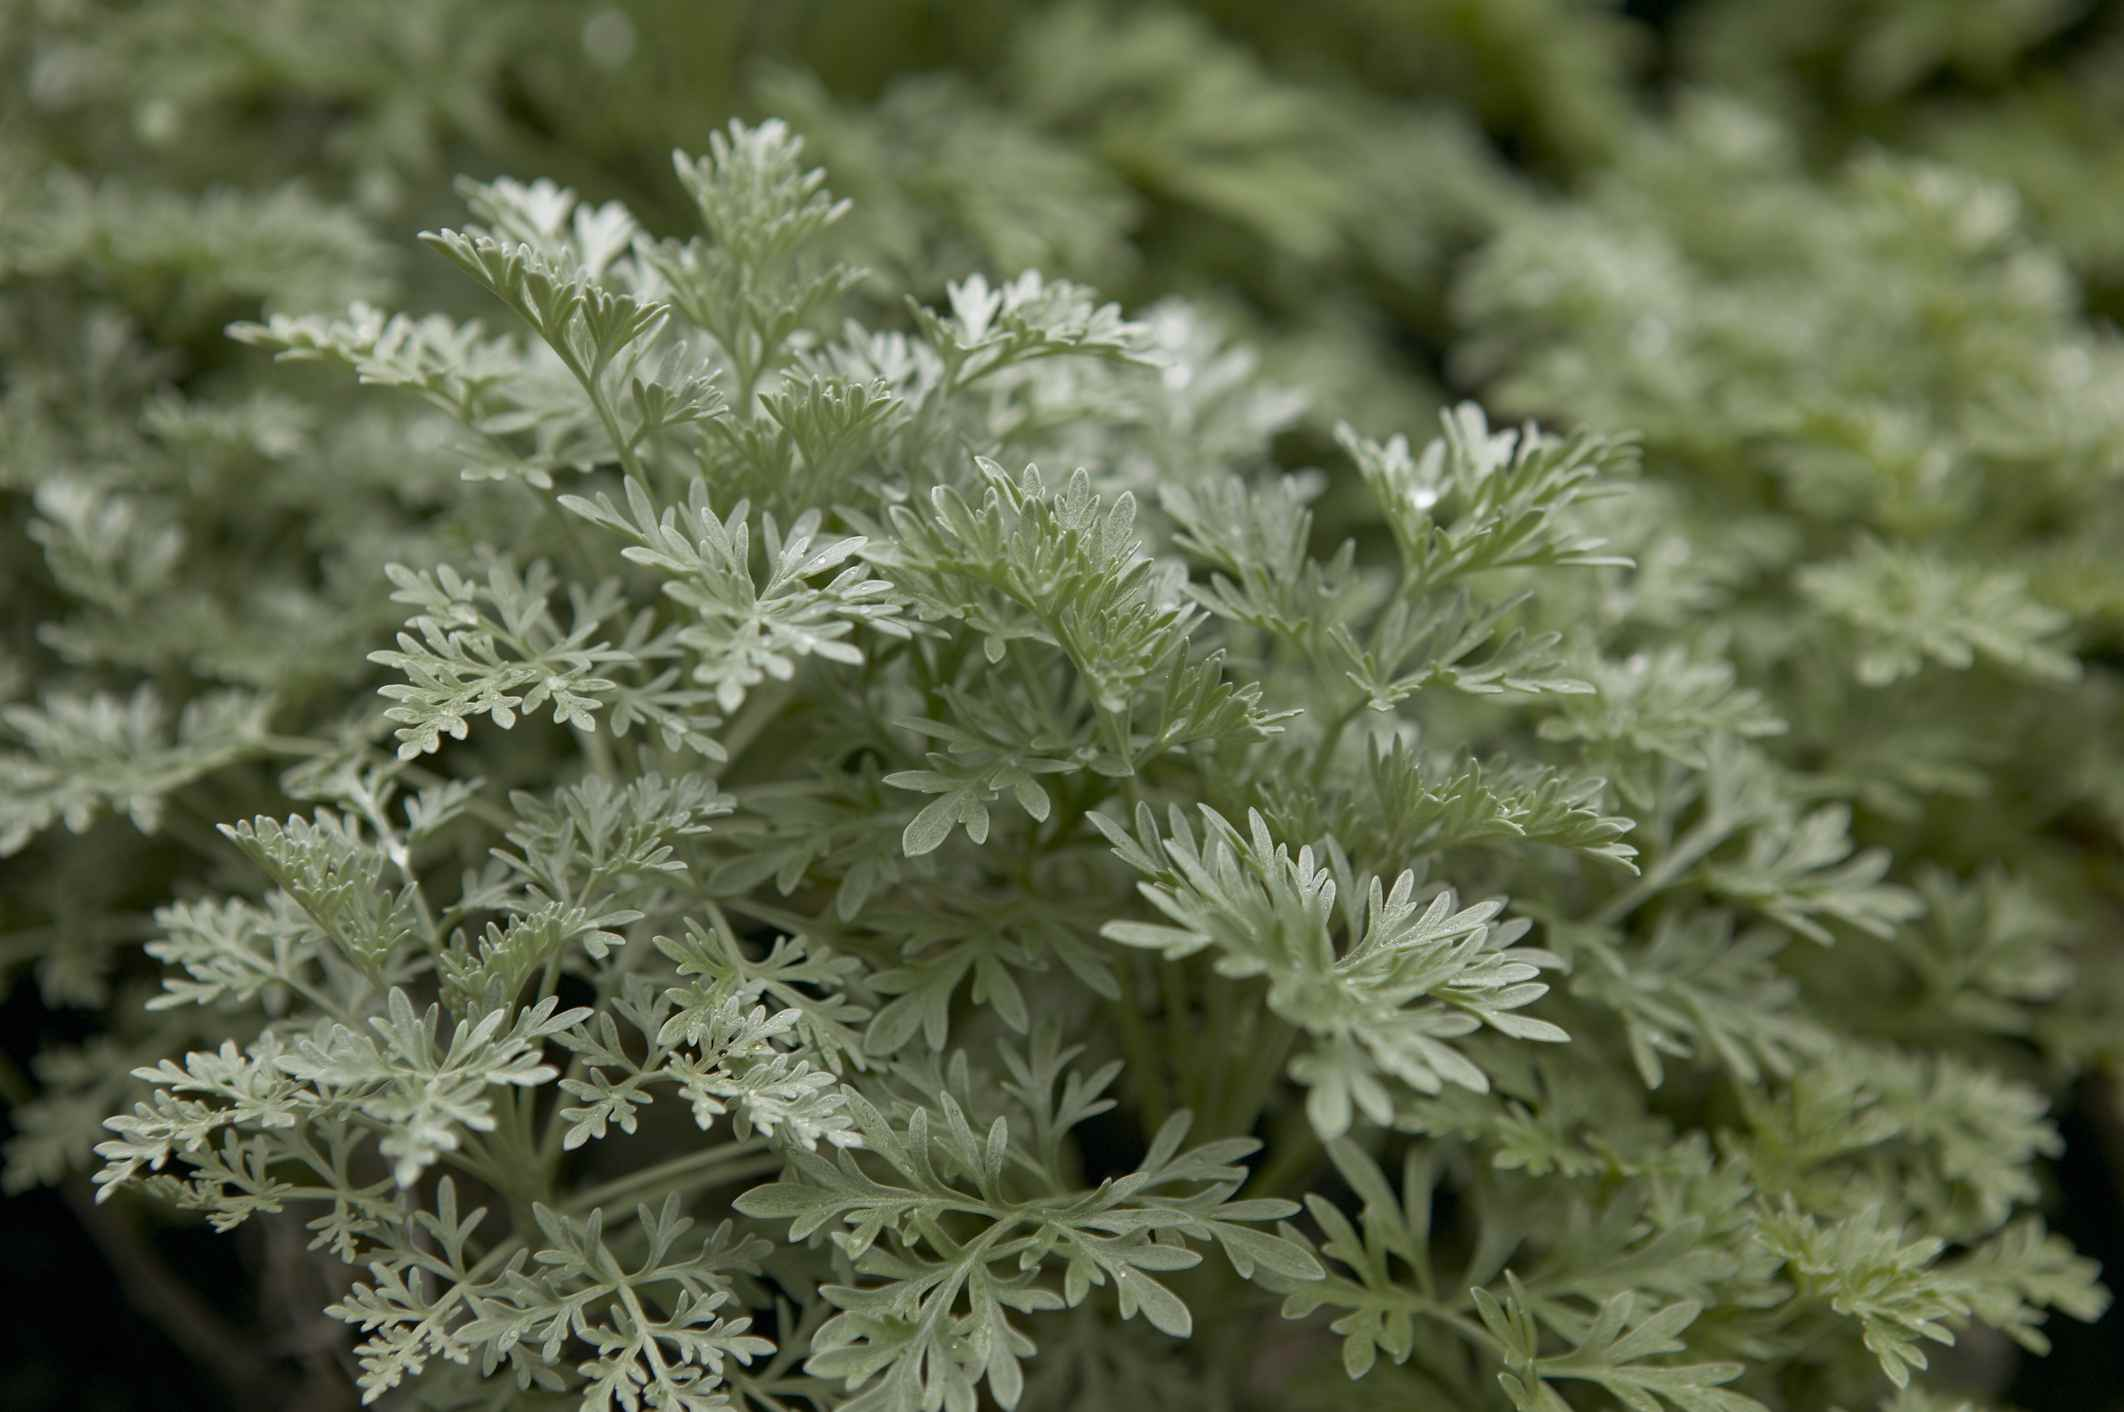 Silver leaves of Artemisia Powis Castle plant